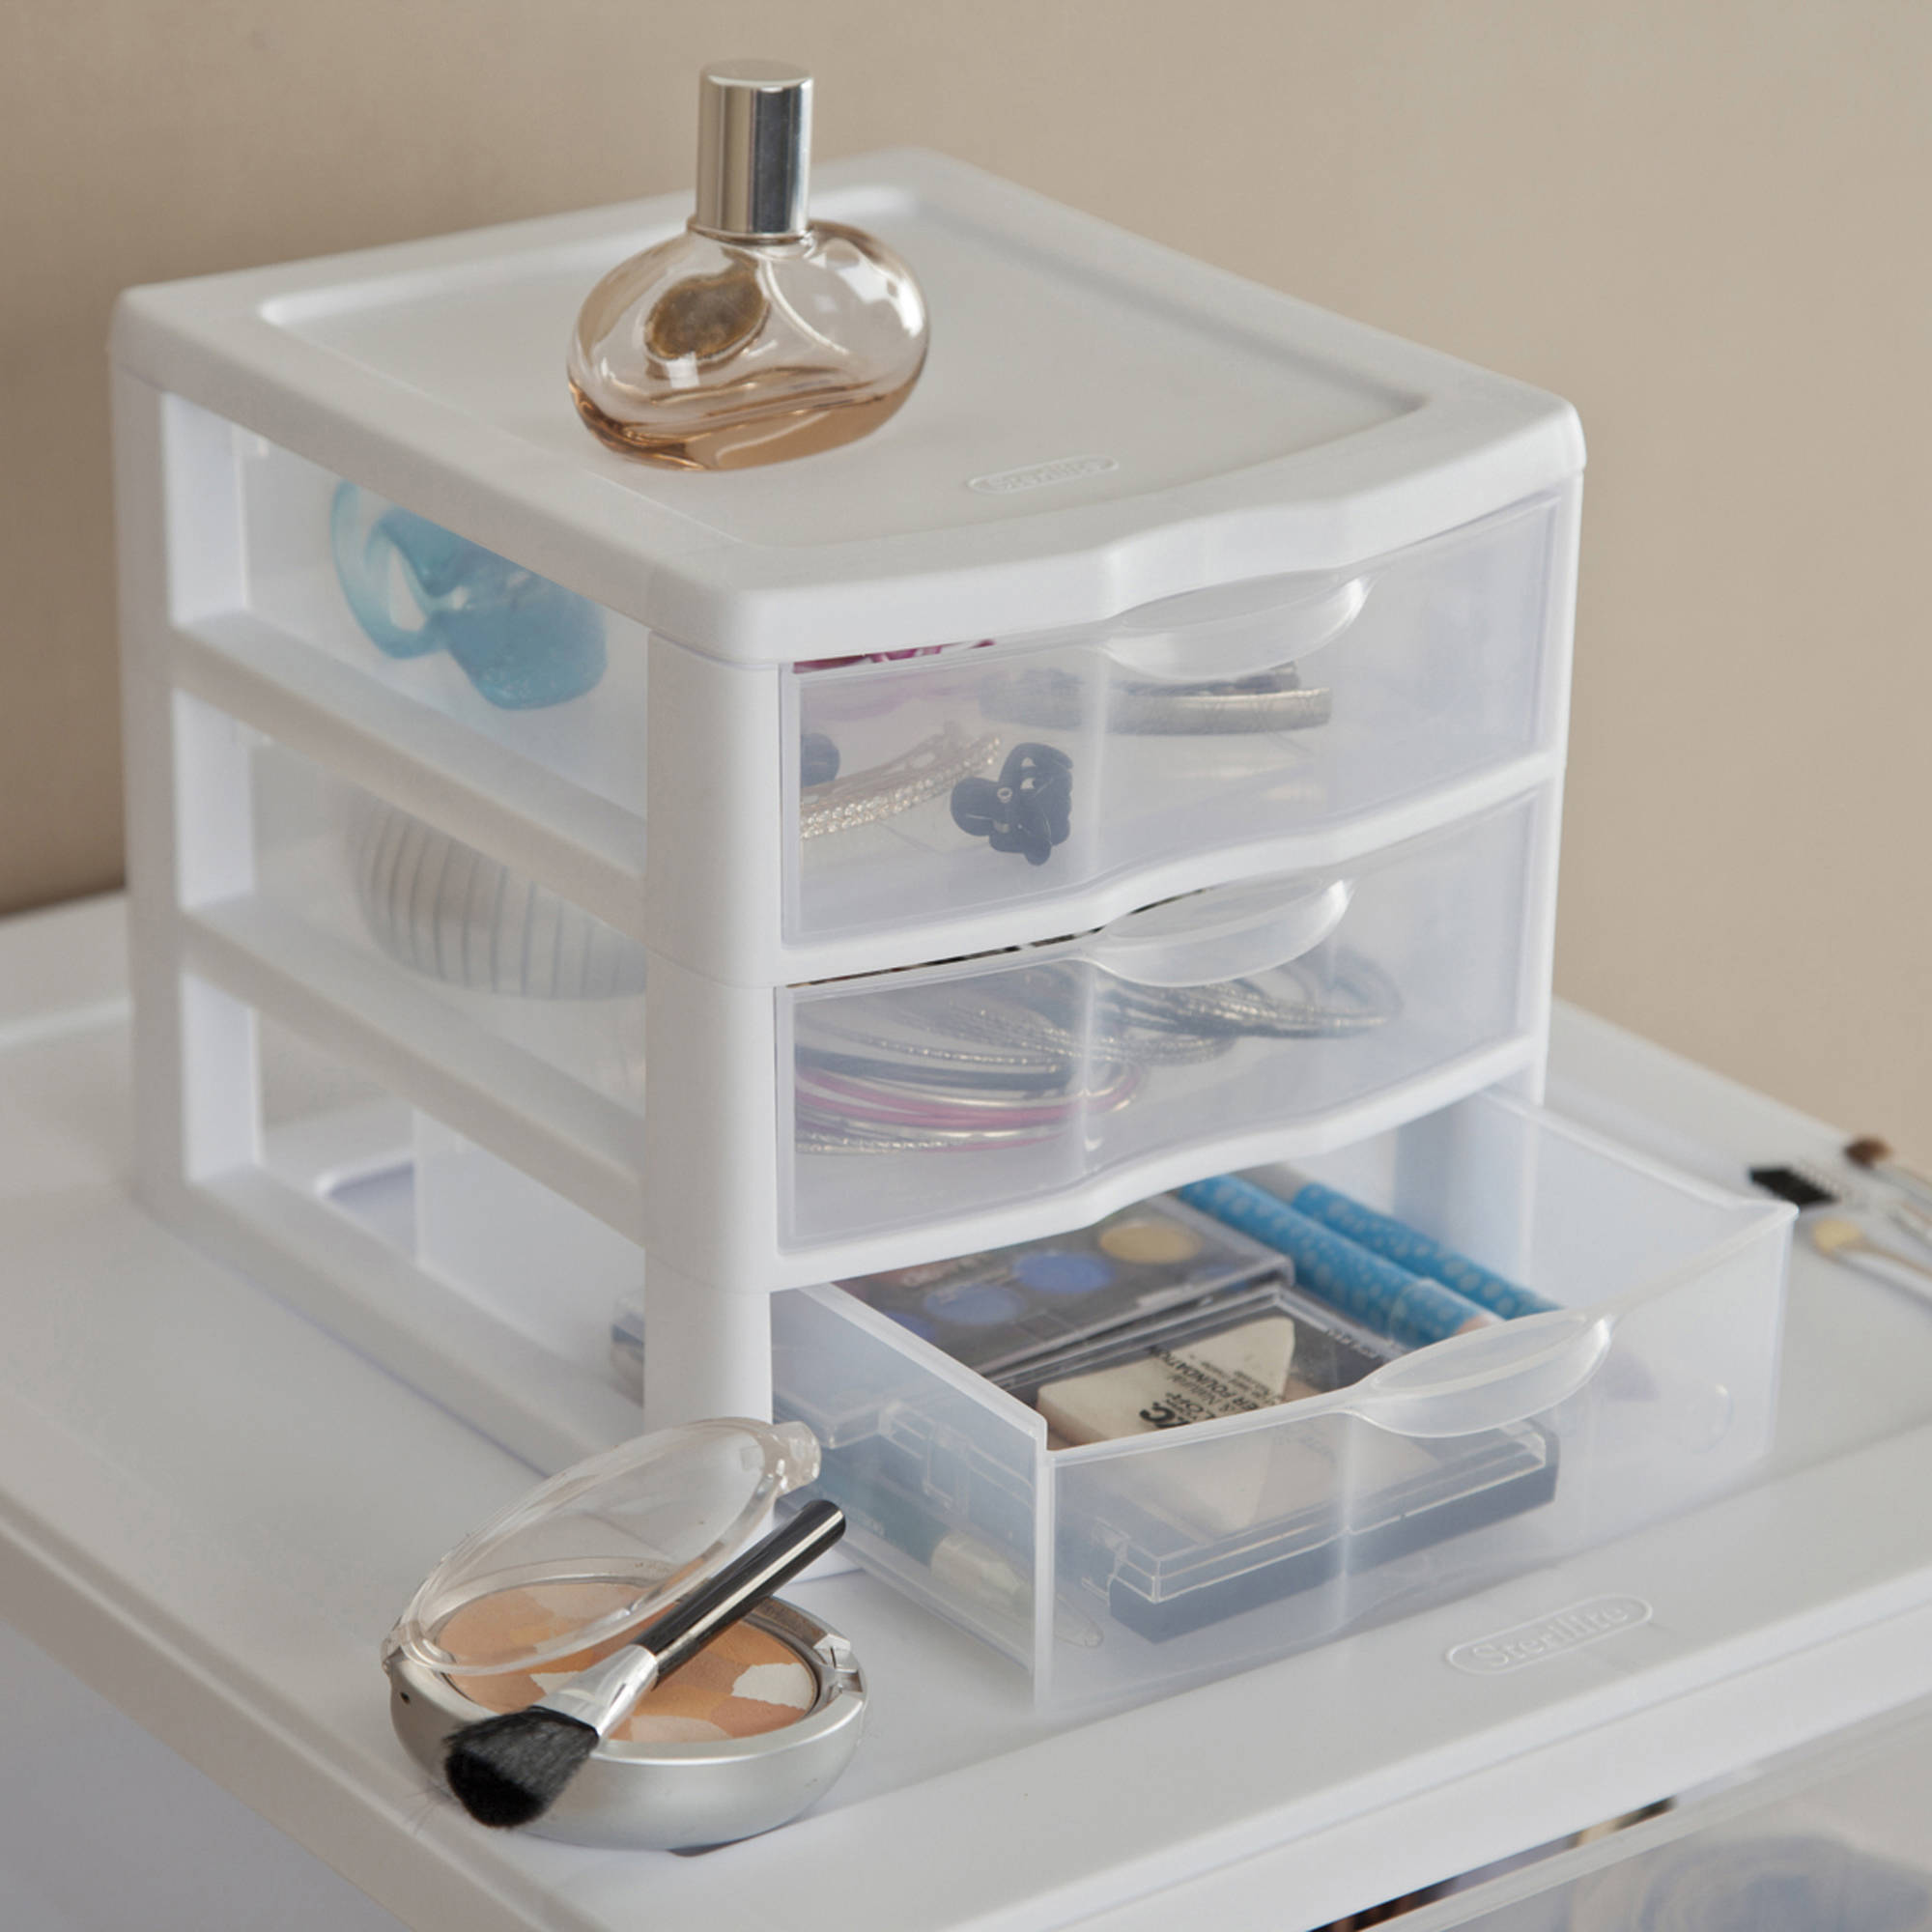 Organizer ... & Small Storage Containers With Drawers - Listitdallas